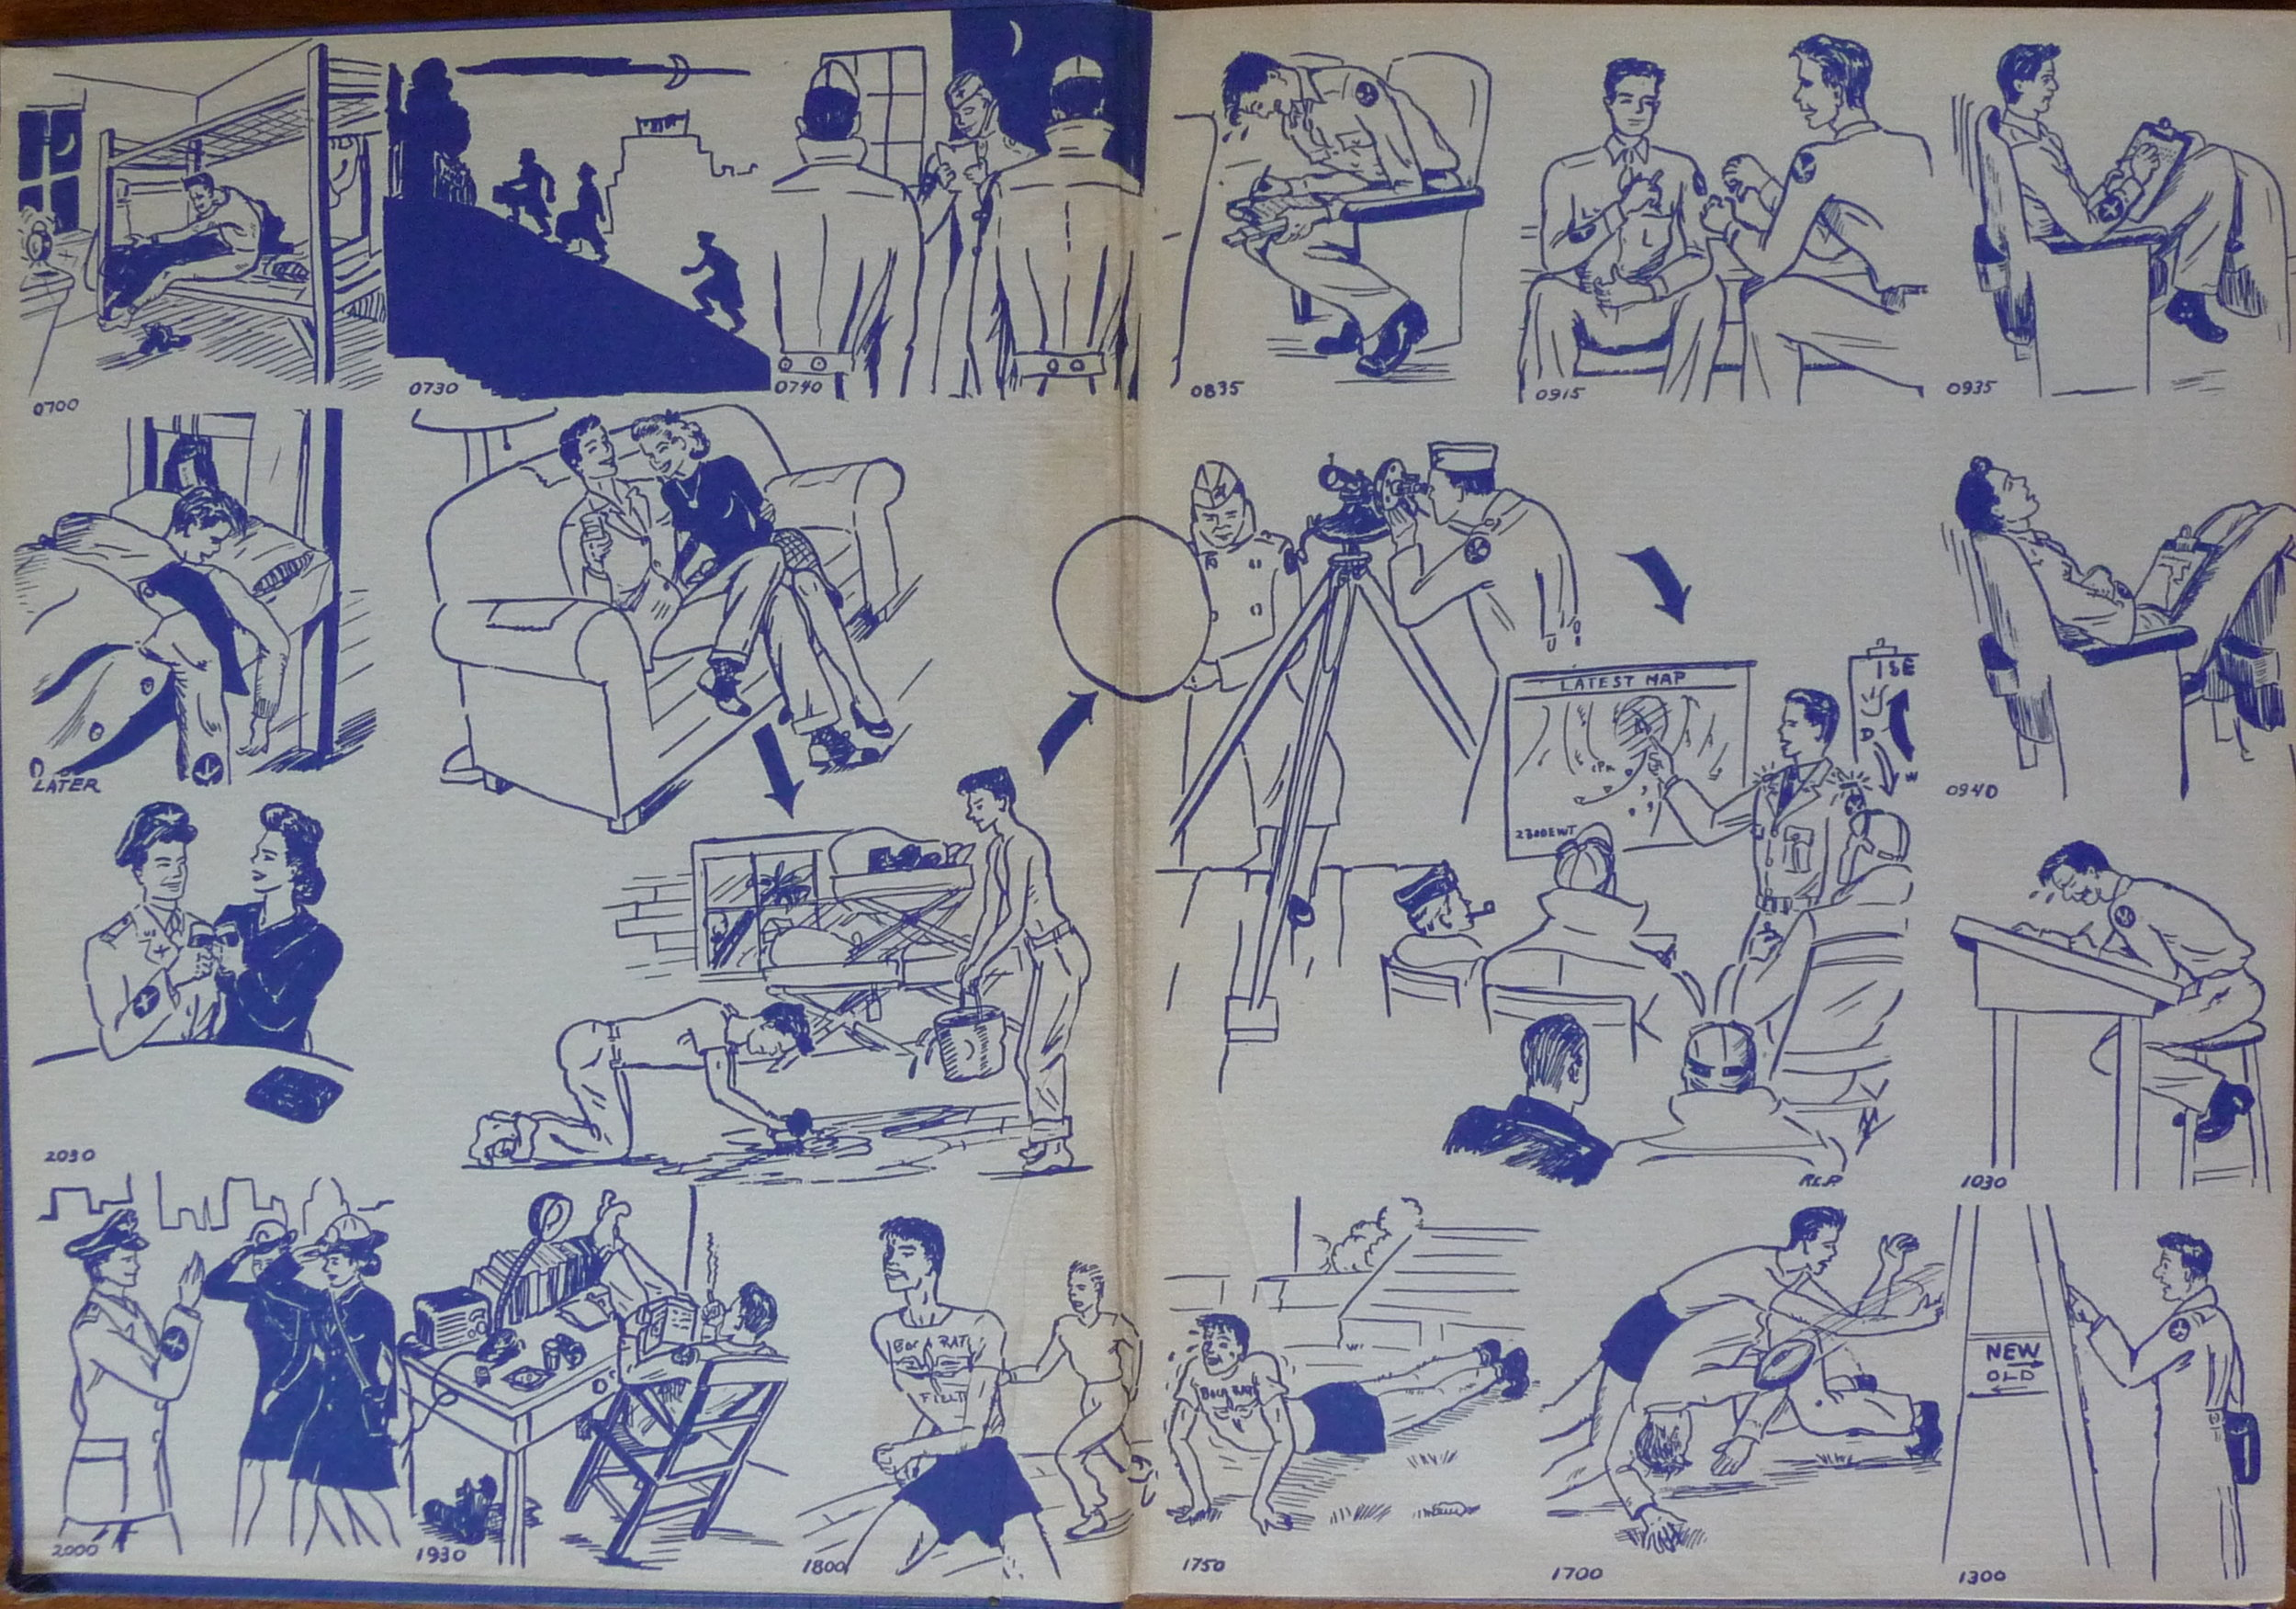 Cartoon illustrating a day in the life of a US military meteorological cadet. From  Synopsis Class 1-A-44 , a commemorative yearbook produced by the   30th Army Air Force Technical Training Detachment, New York University, 1944. Drawing by weather cadet Robert C. Patterson.